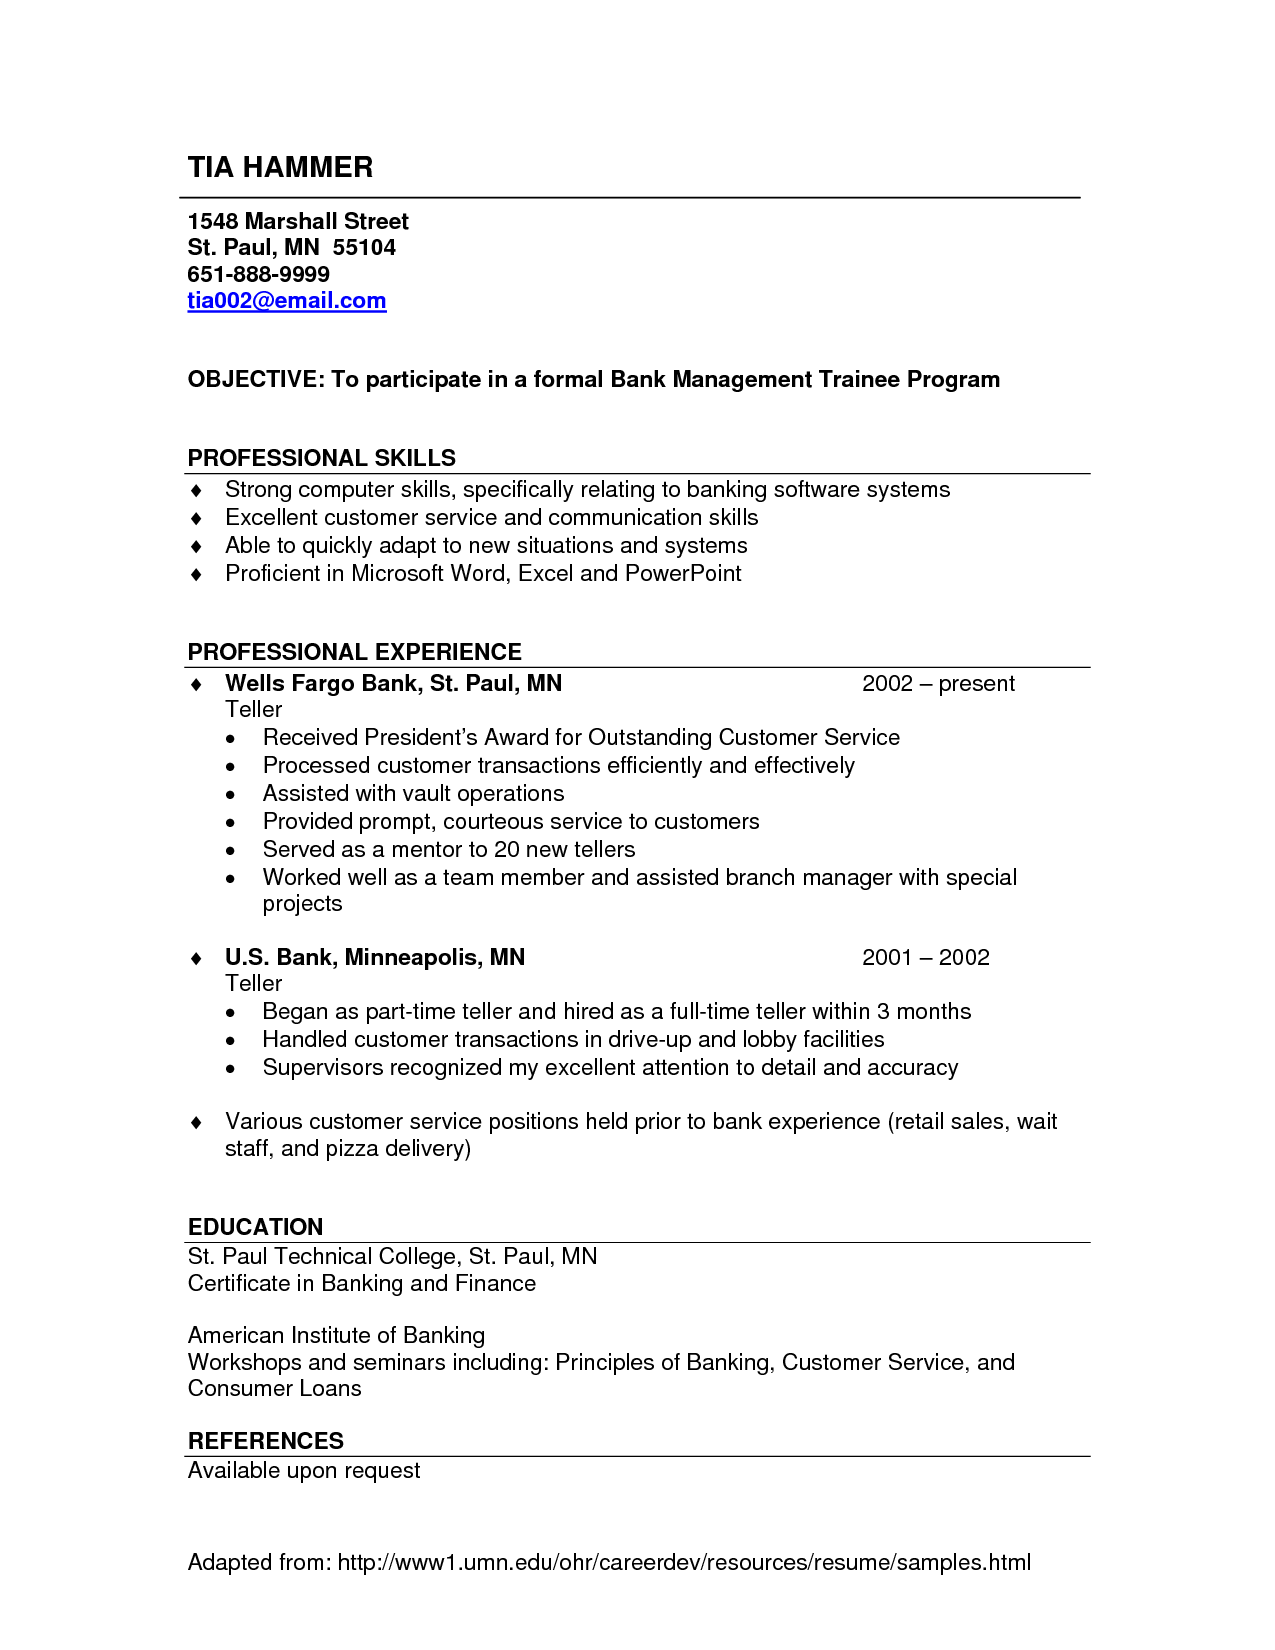 Pin by jobresume on Resume Career termplate free Pinterest Bank